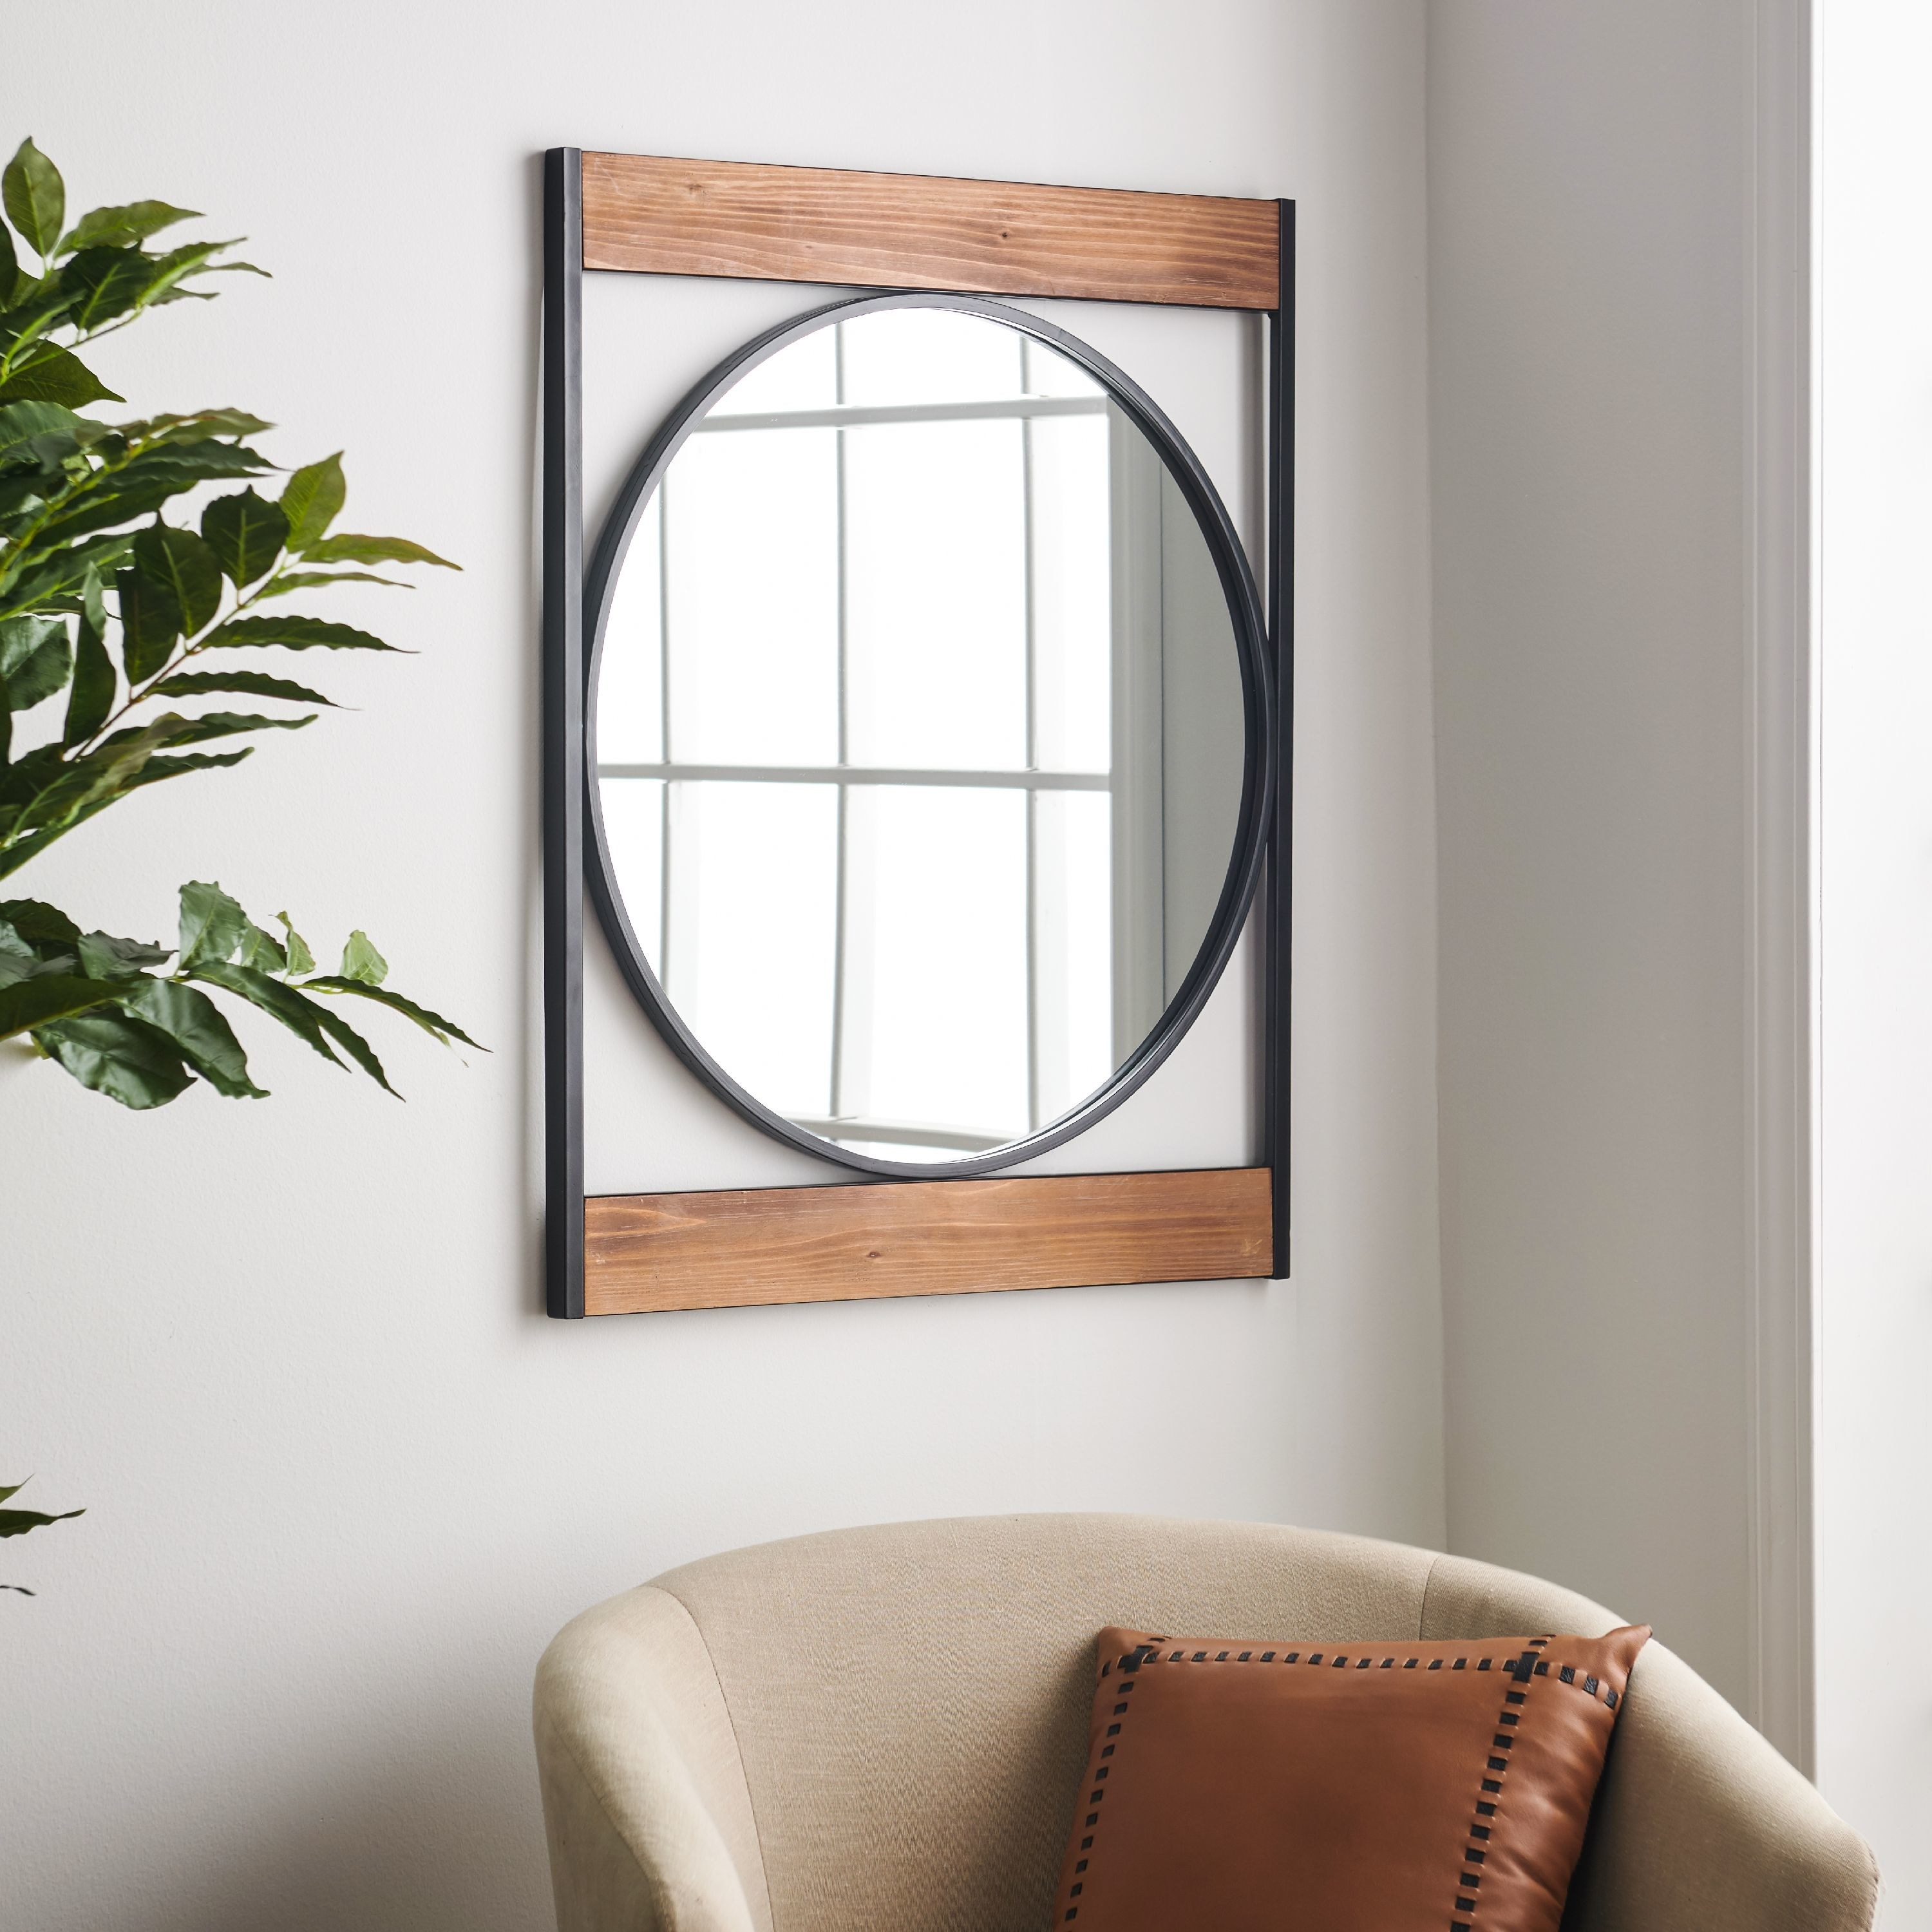 A circular mirror with a black metal frame situated between two horizontal pieces of wood and two vertical metal frames